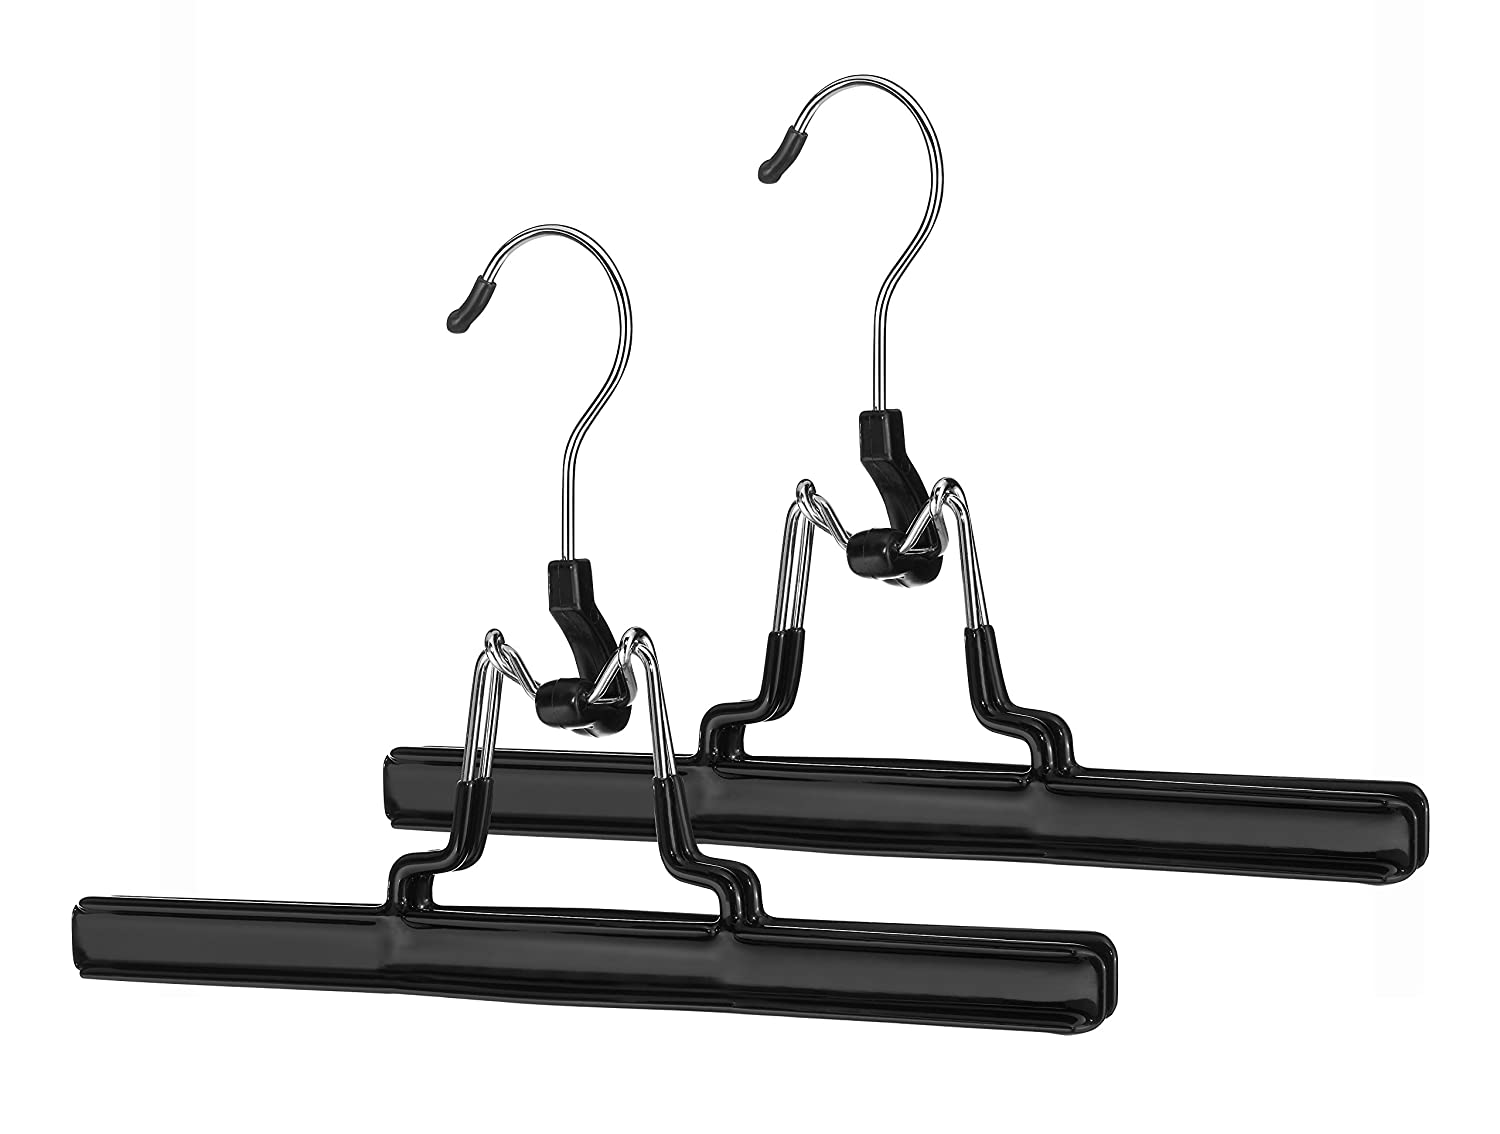 Whitmor 6021-217 Ebony Chrome Skirt and Slack Hanger, Set of 2